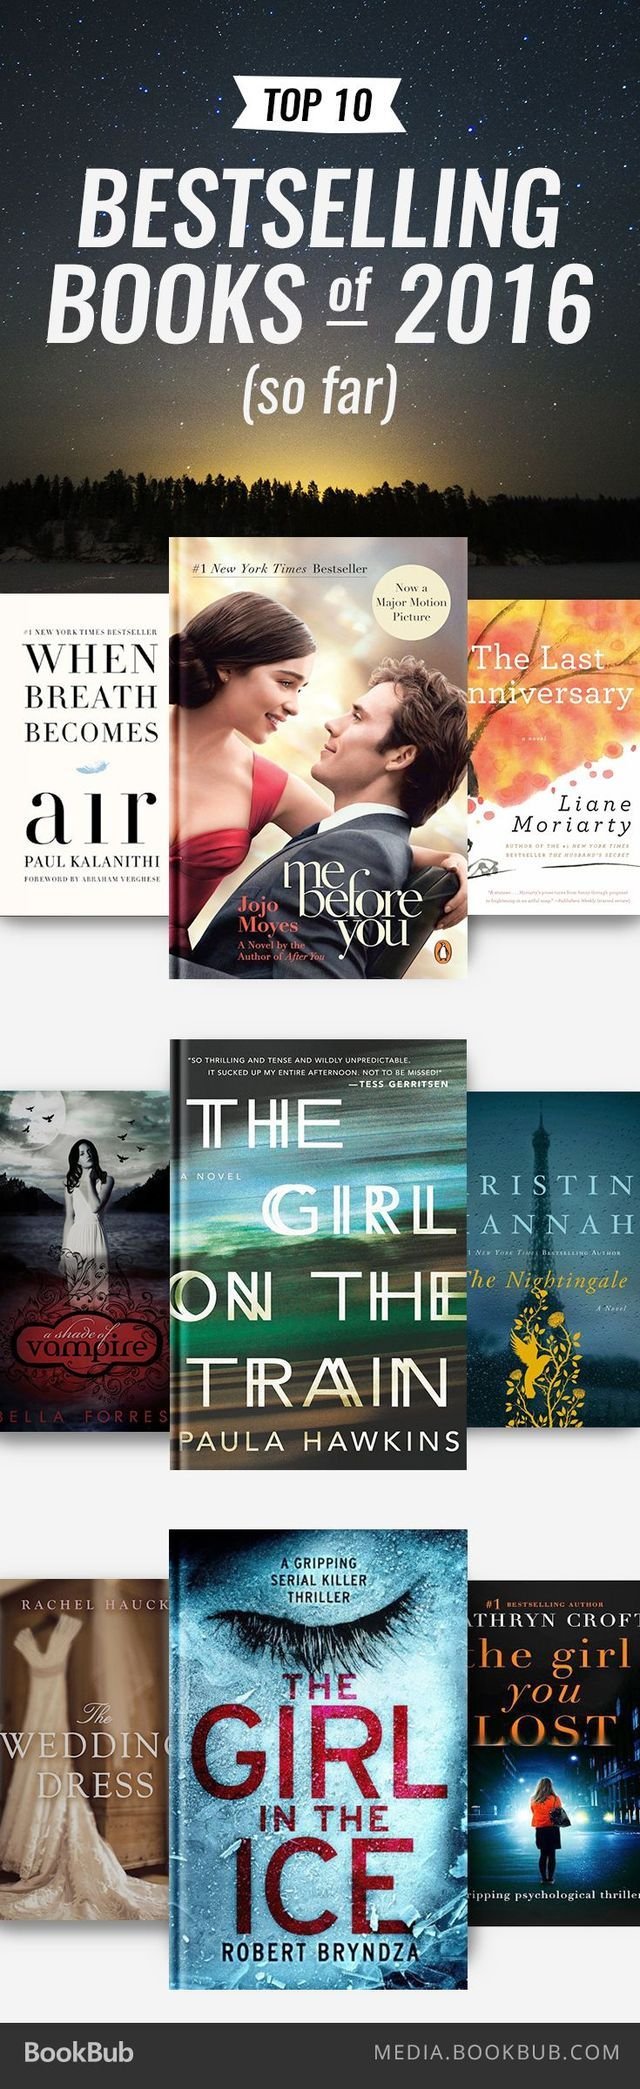 The top 10 bestselling books of 2016 the top 10 bestselling books of 2016 so best selling